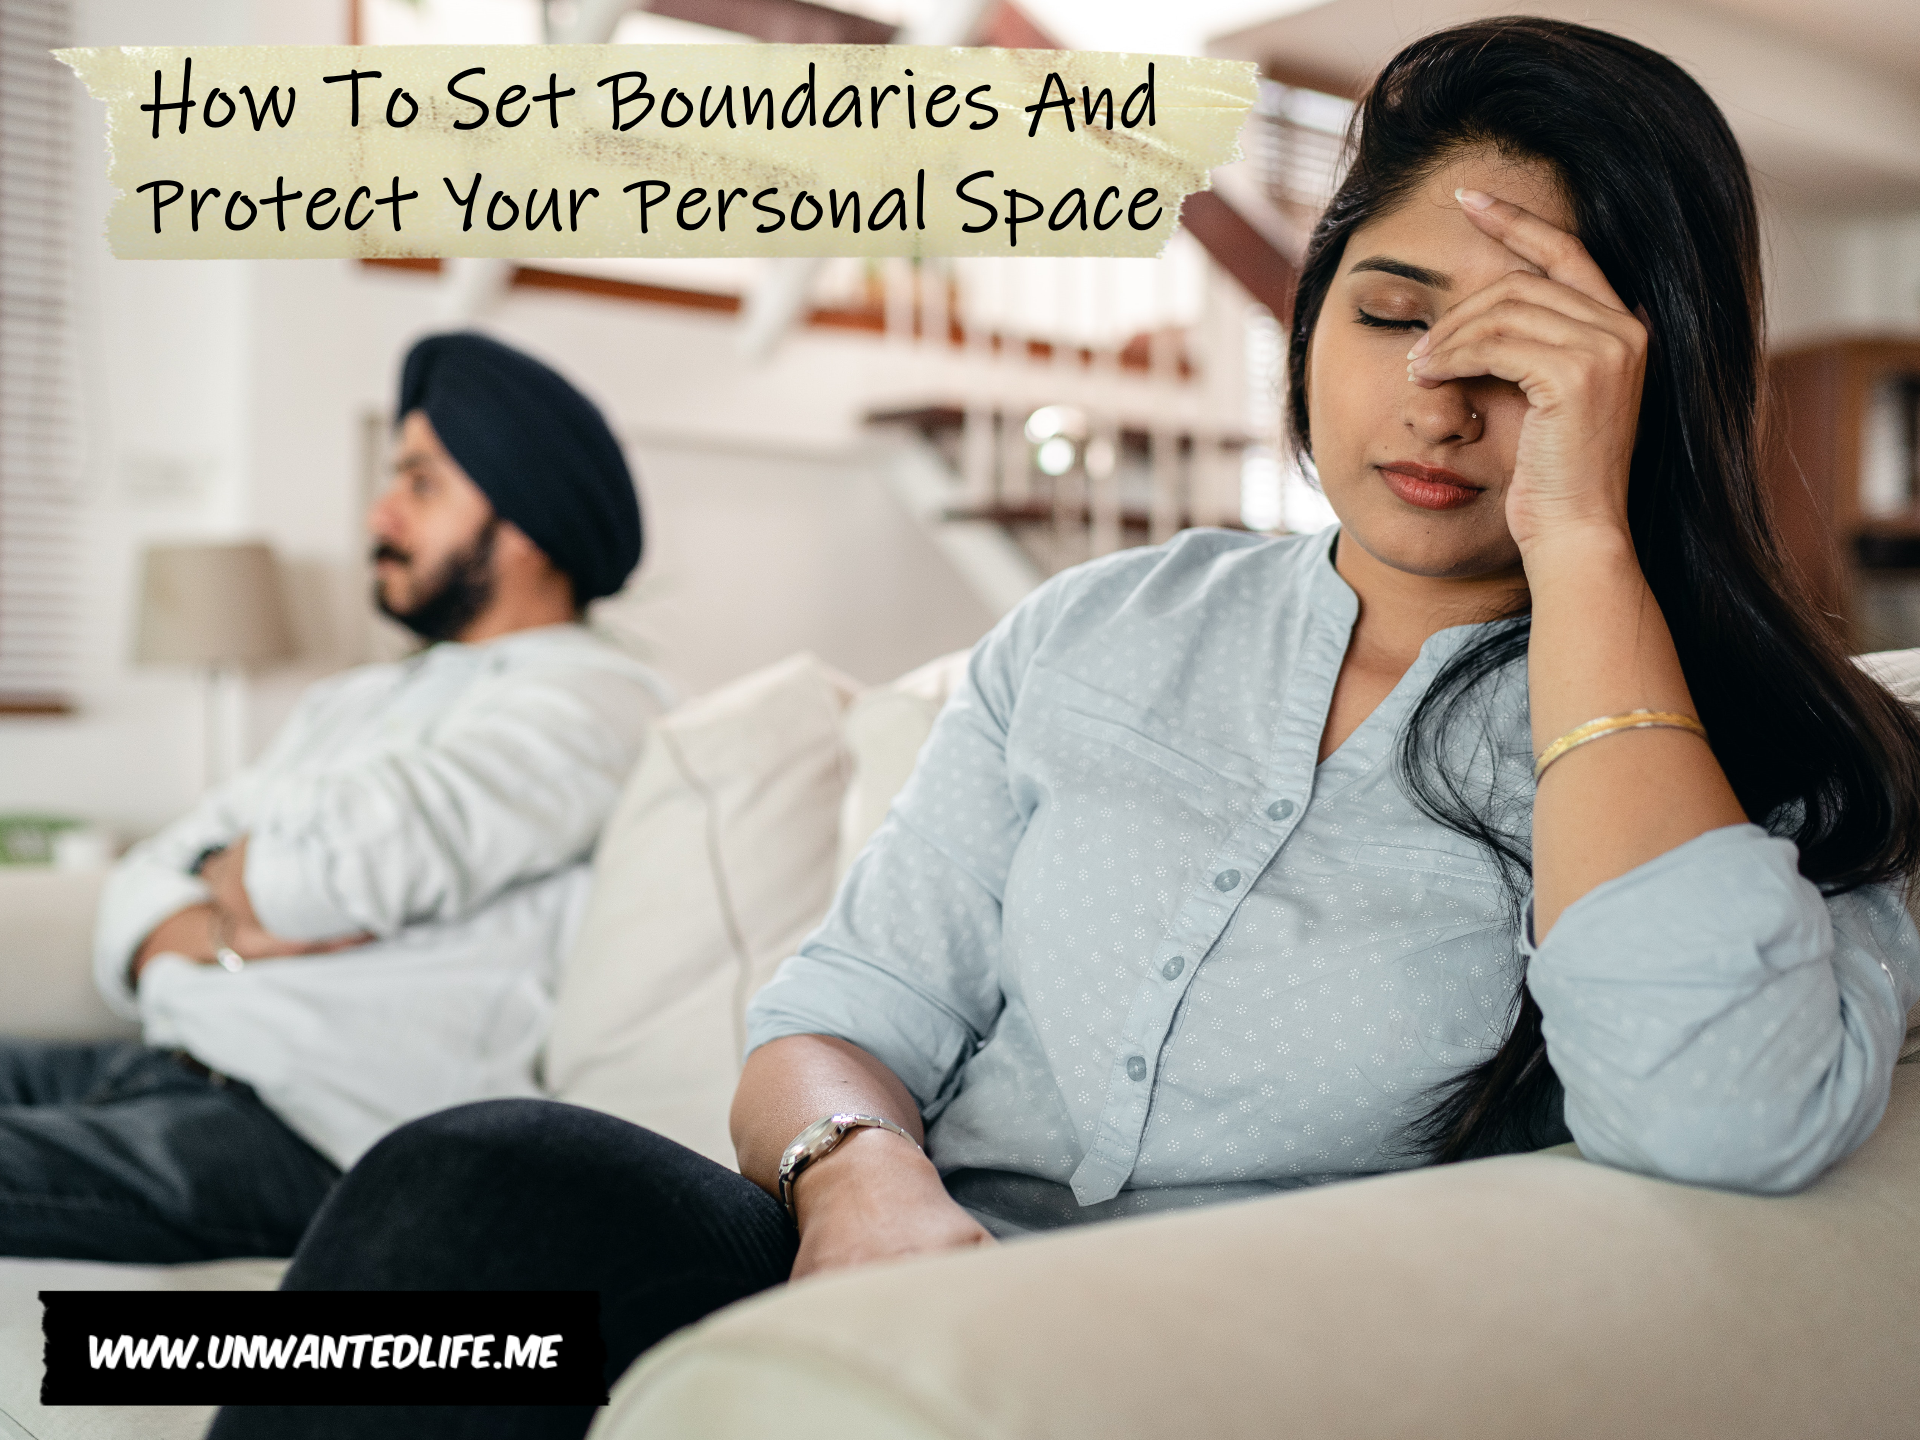 How To Set Boundaries And Protect Your Personal Space | Mental Health and Wellness | Unwanted Life